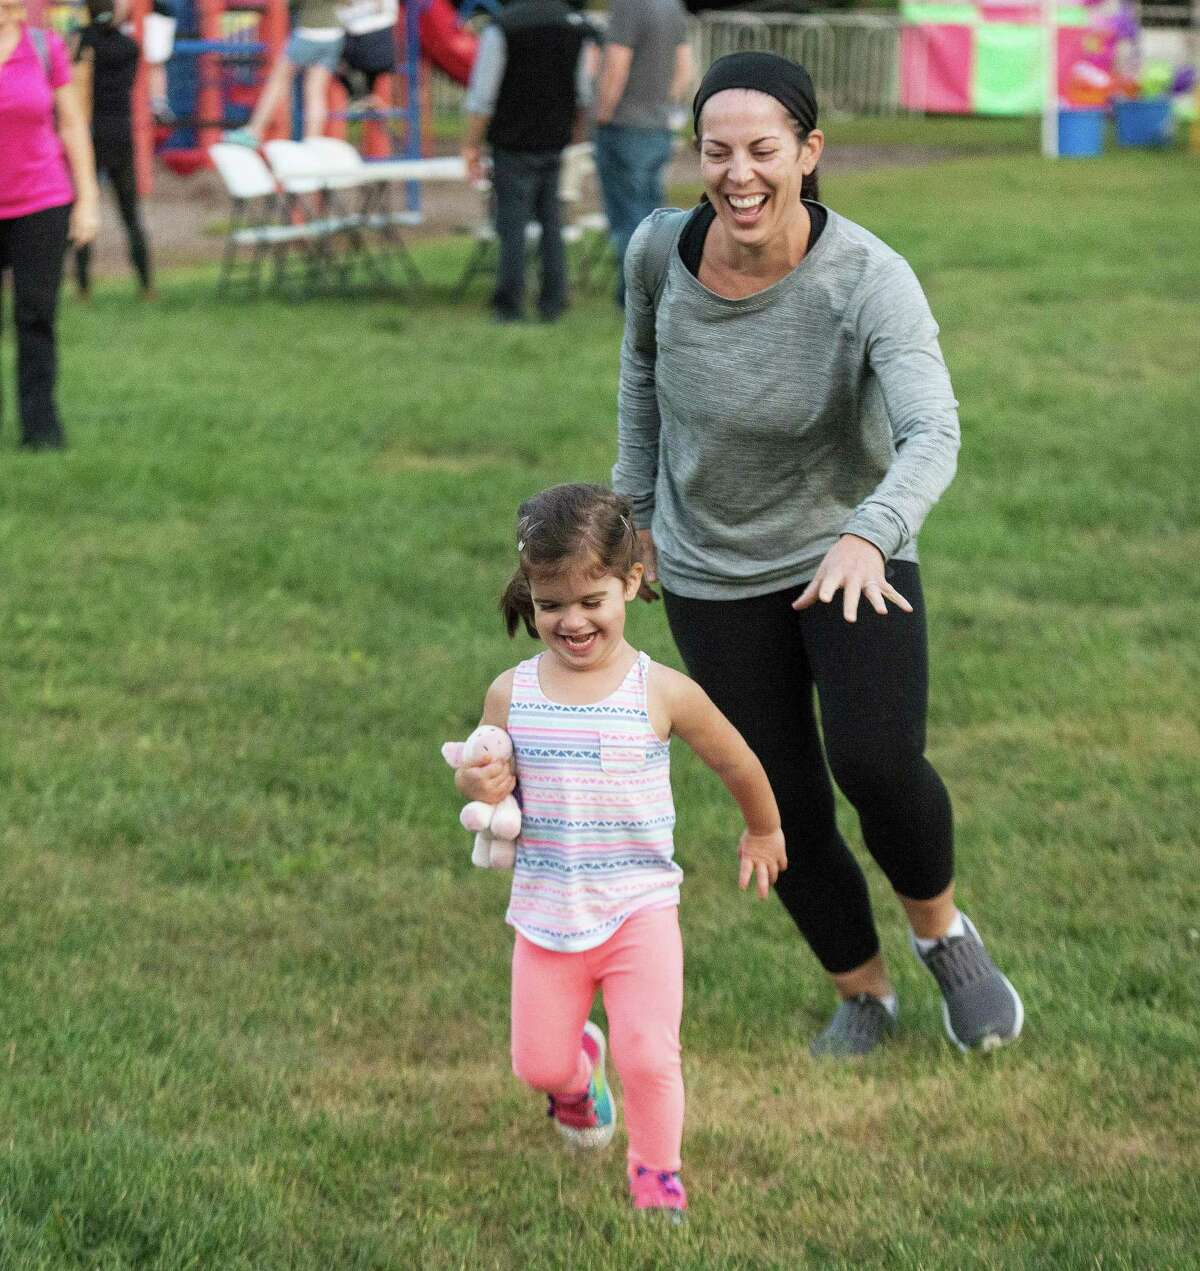 Three-year-old Lyla plays tag with her mother, Kelly, at the Miller-Driscoll PTA carnival.